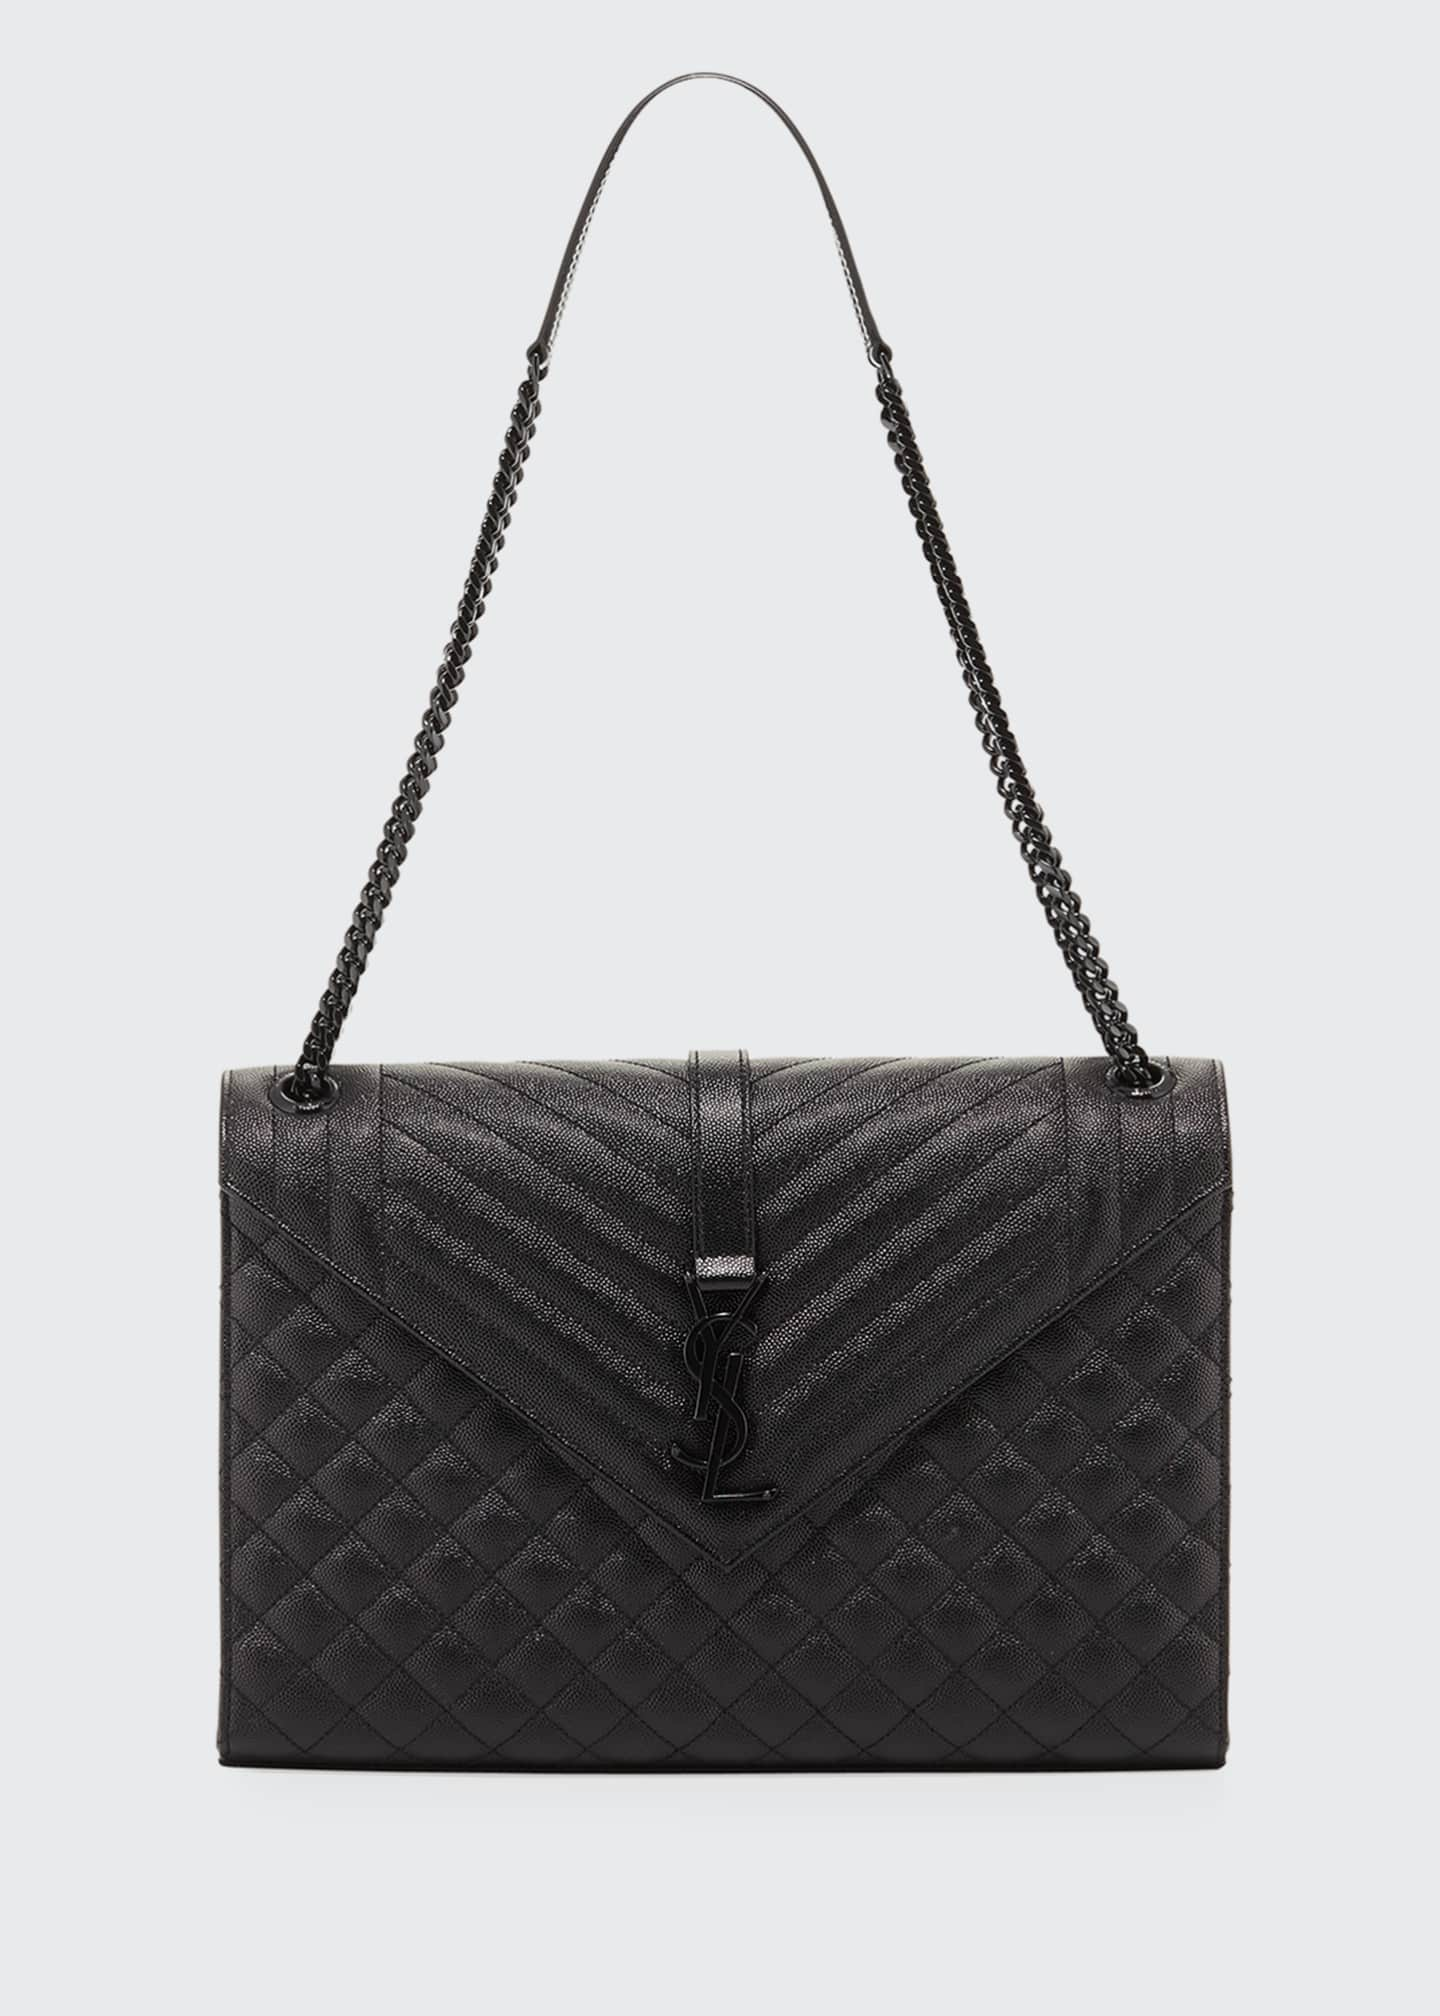 Saint Laurent Large Tri-Quilted Matelasse Grain de Poudre